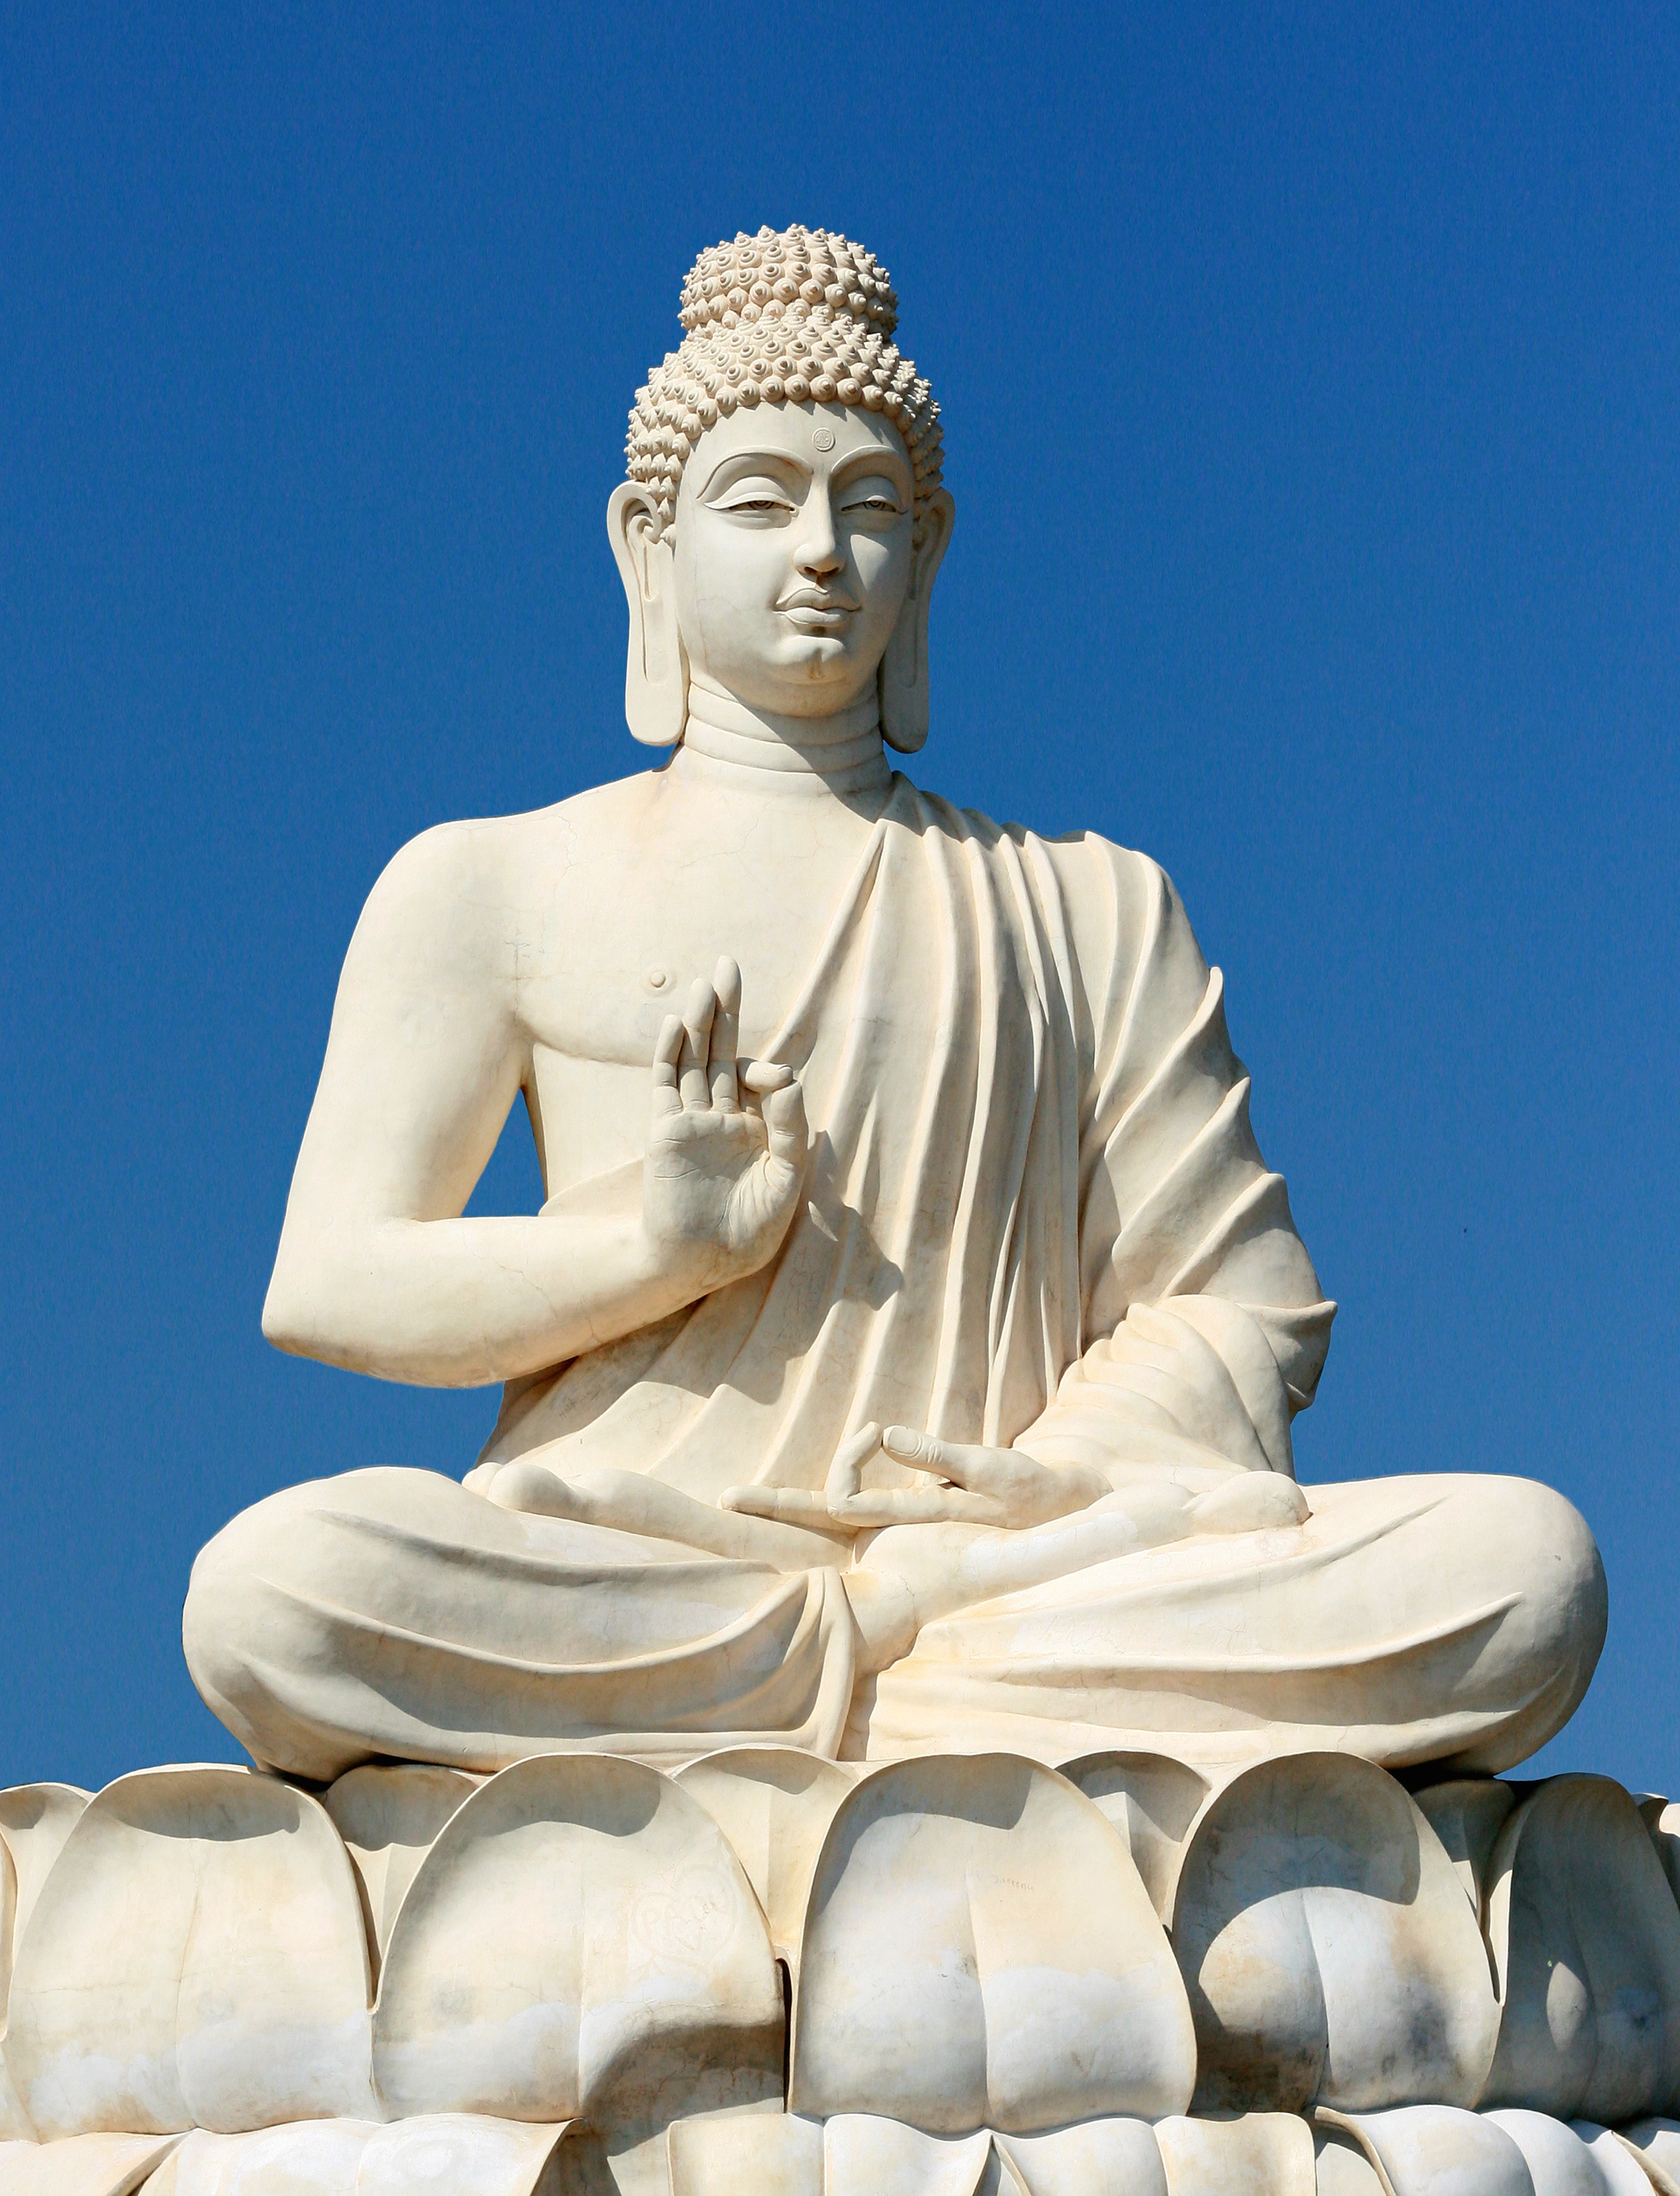 [Image: Buddha%27s%20New%20Year%27s%20Wikimedia%20Commons.jpg]